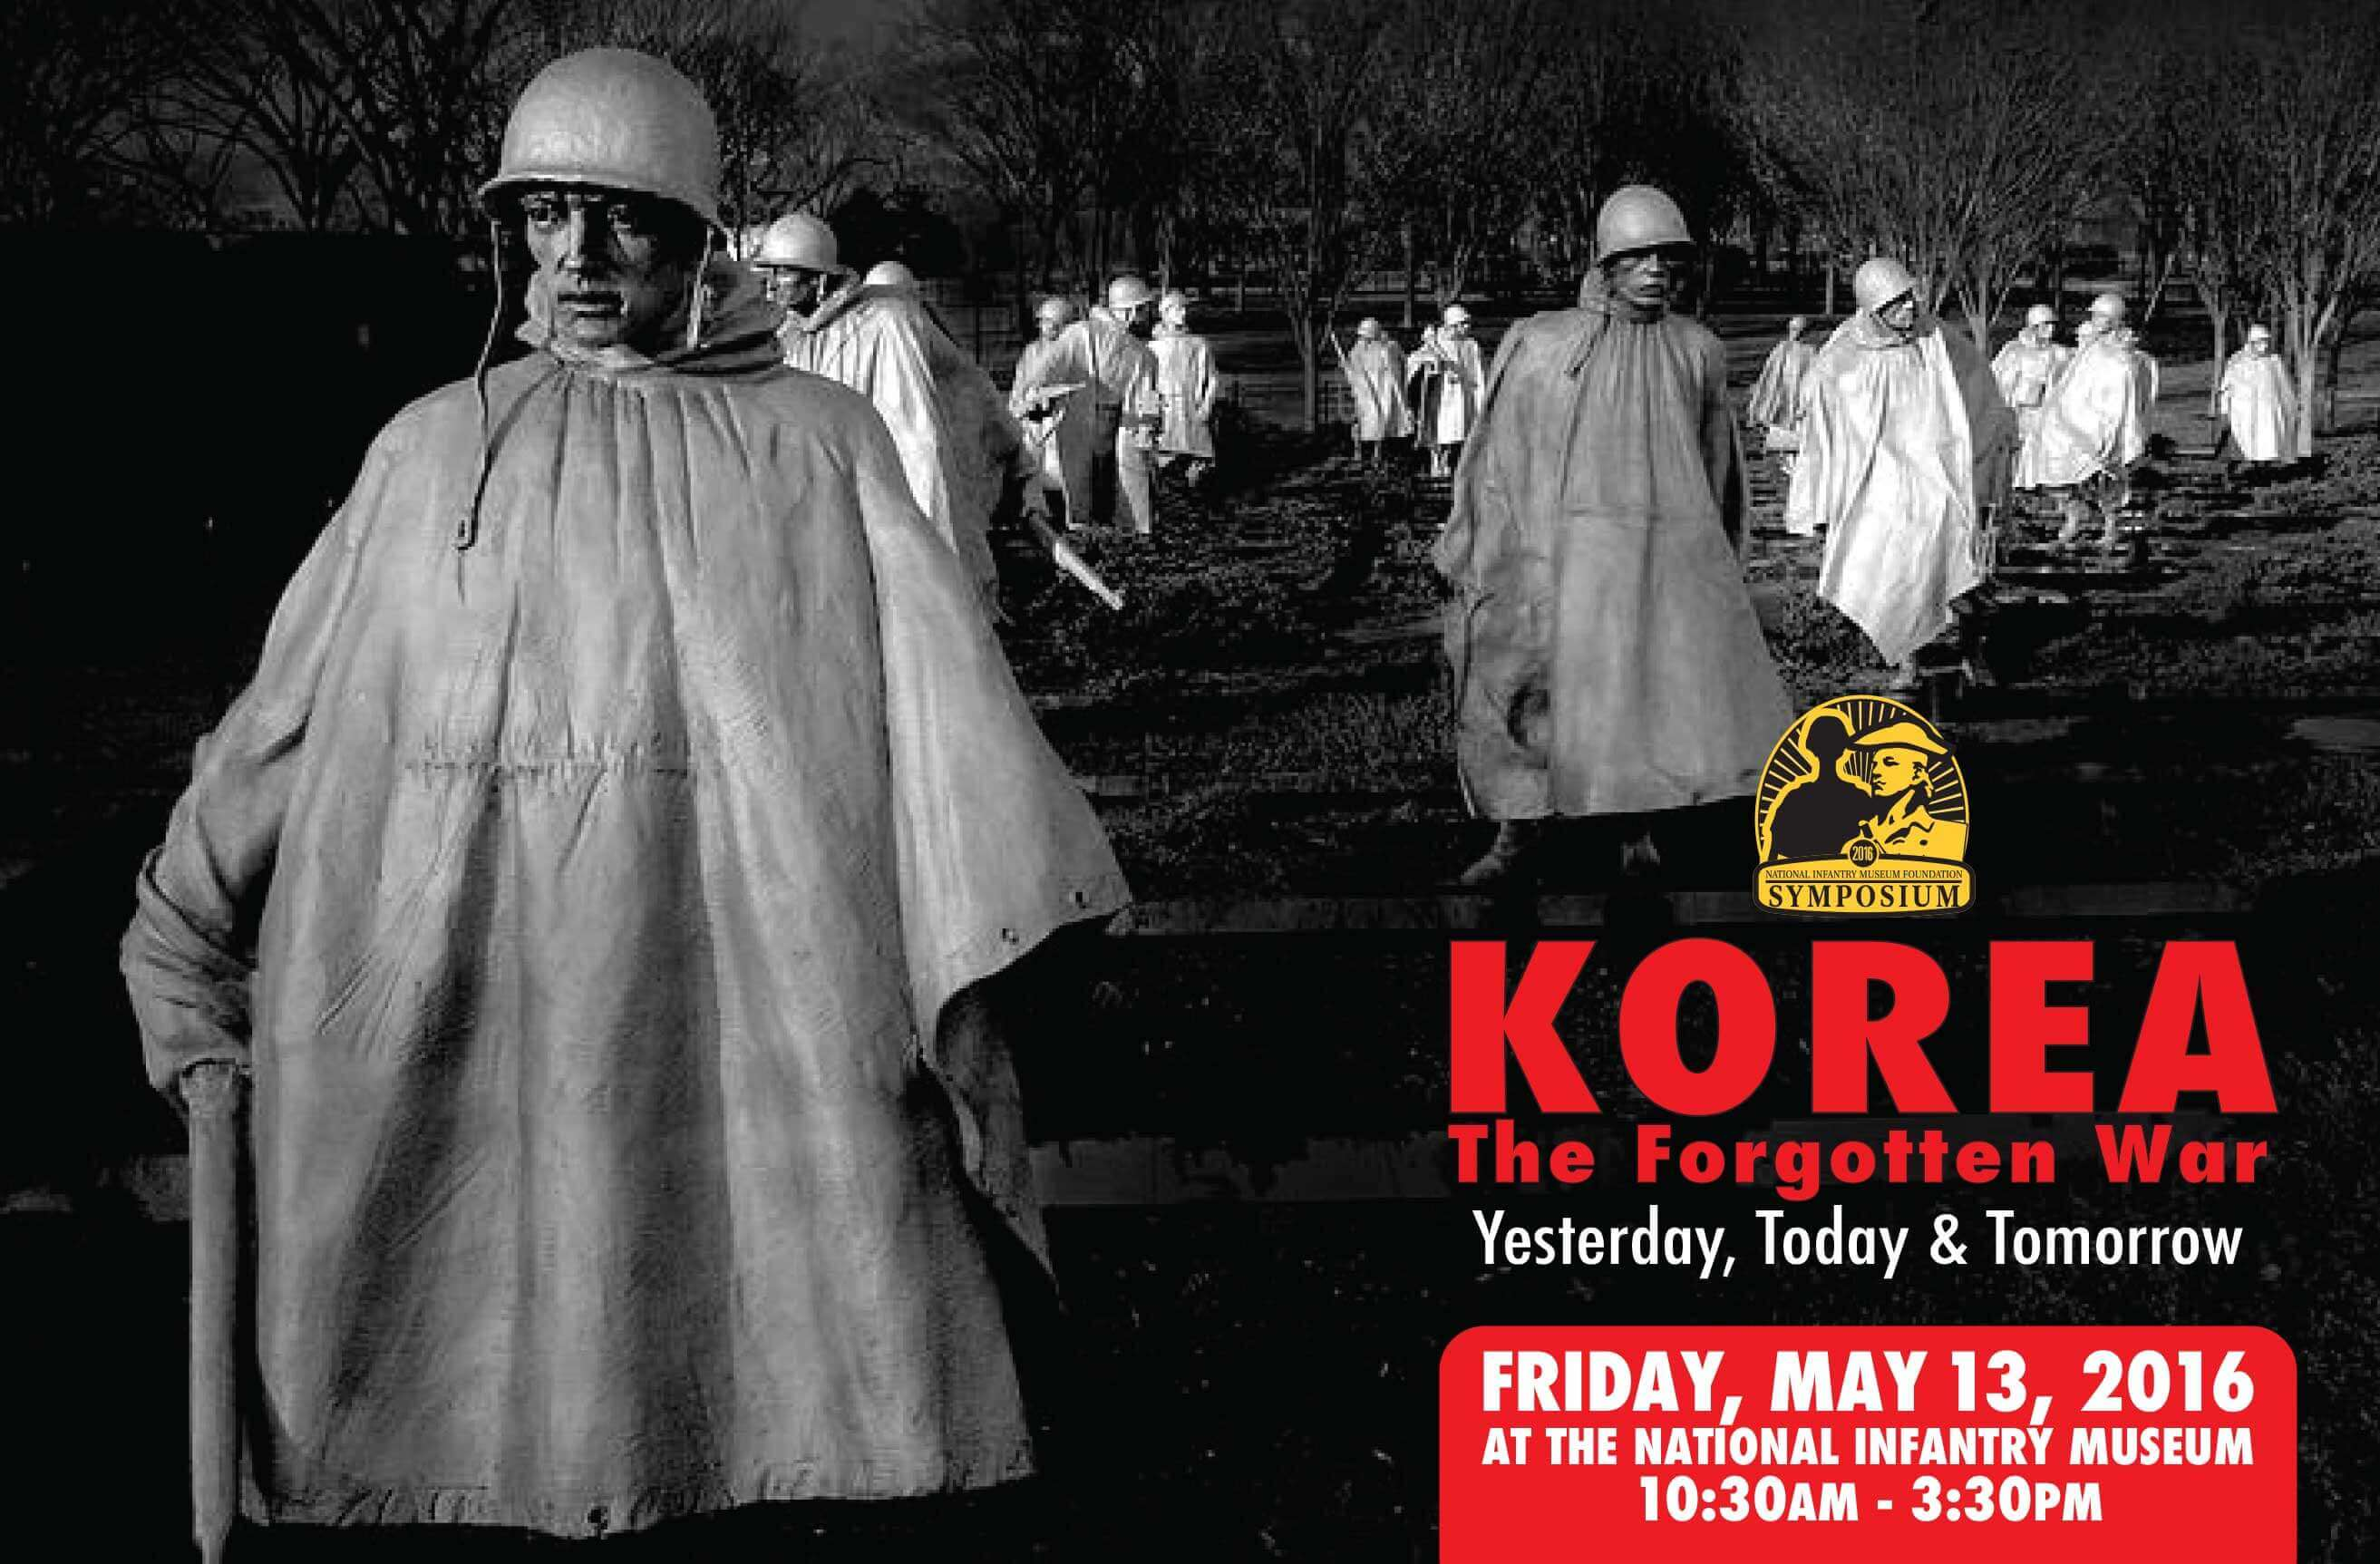 the forgotten war in korea Korea the forgotten war in colour stalemate fad june 25 2010 may 30 2012 test - duration: 1:00:01 kyb kim 2,966 views.